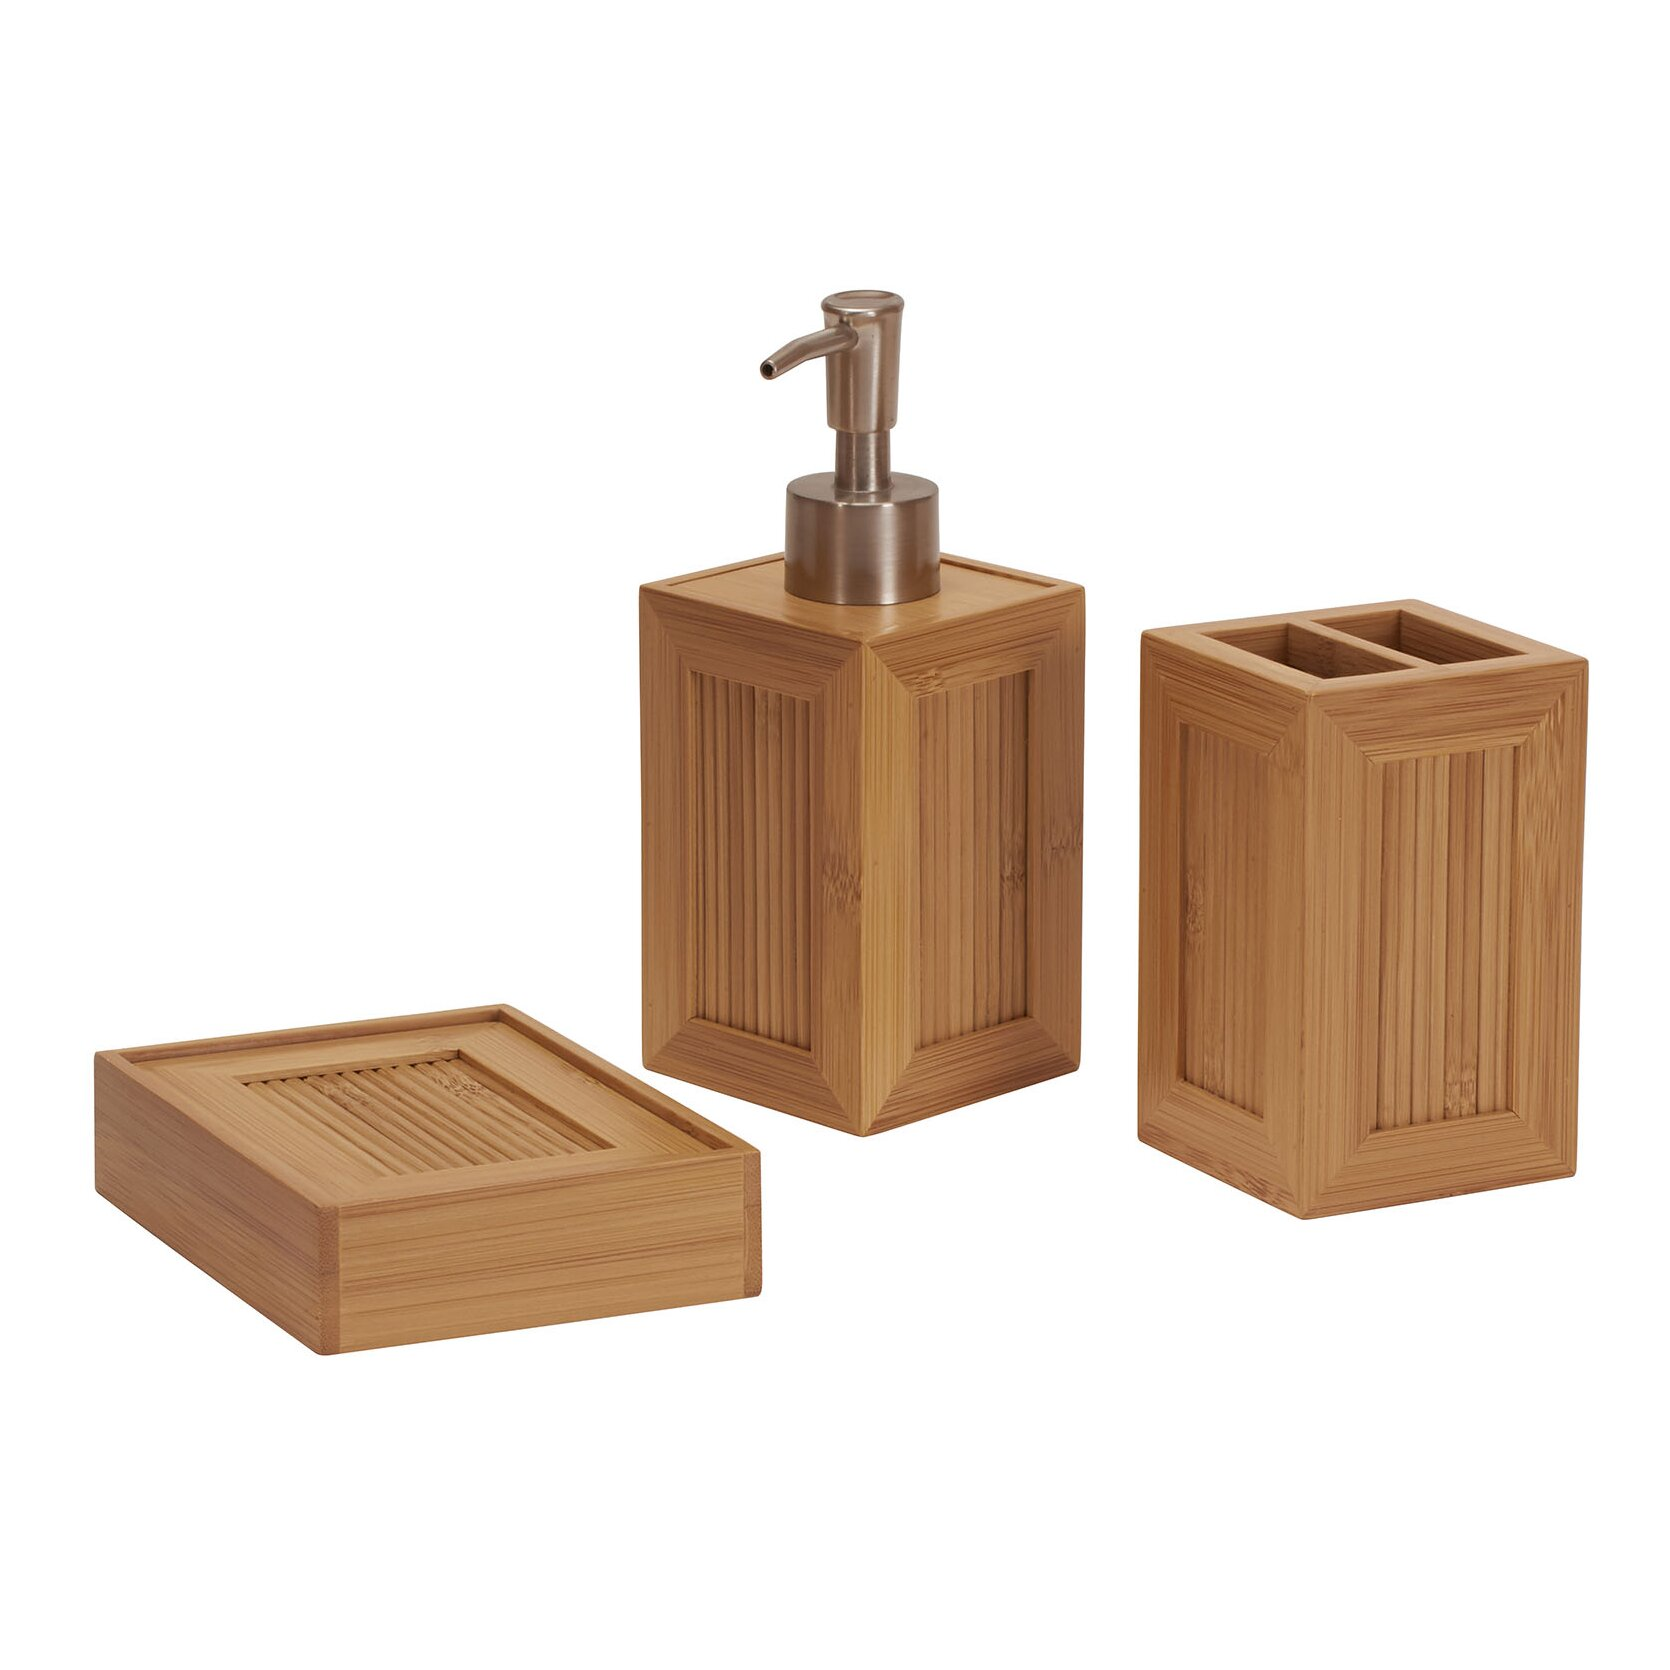 The Twillery Co Shaw 3 Piece Bathroom Accessory Set